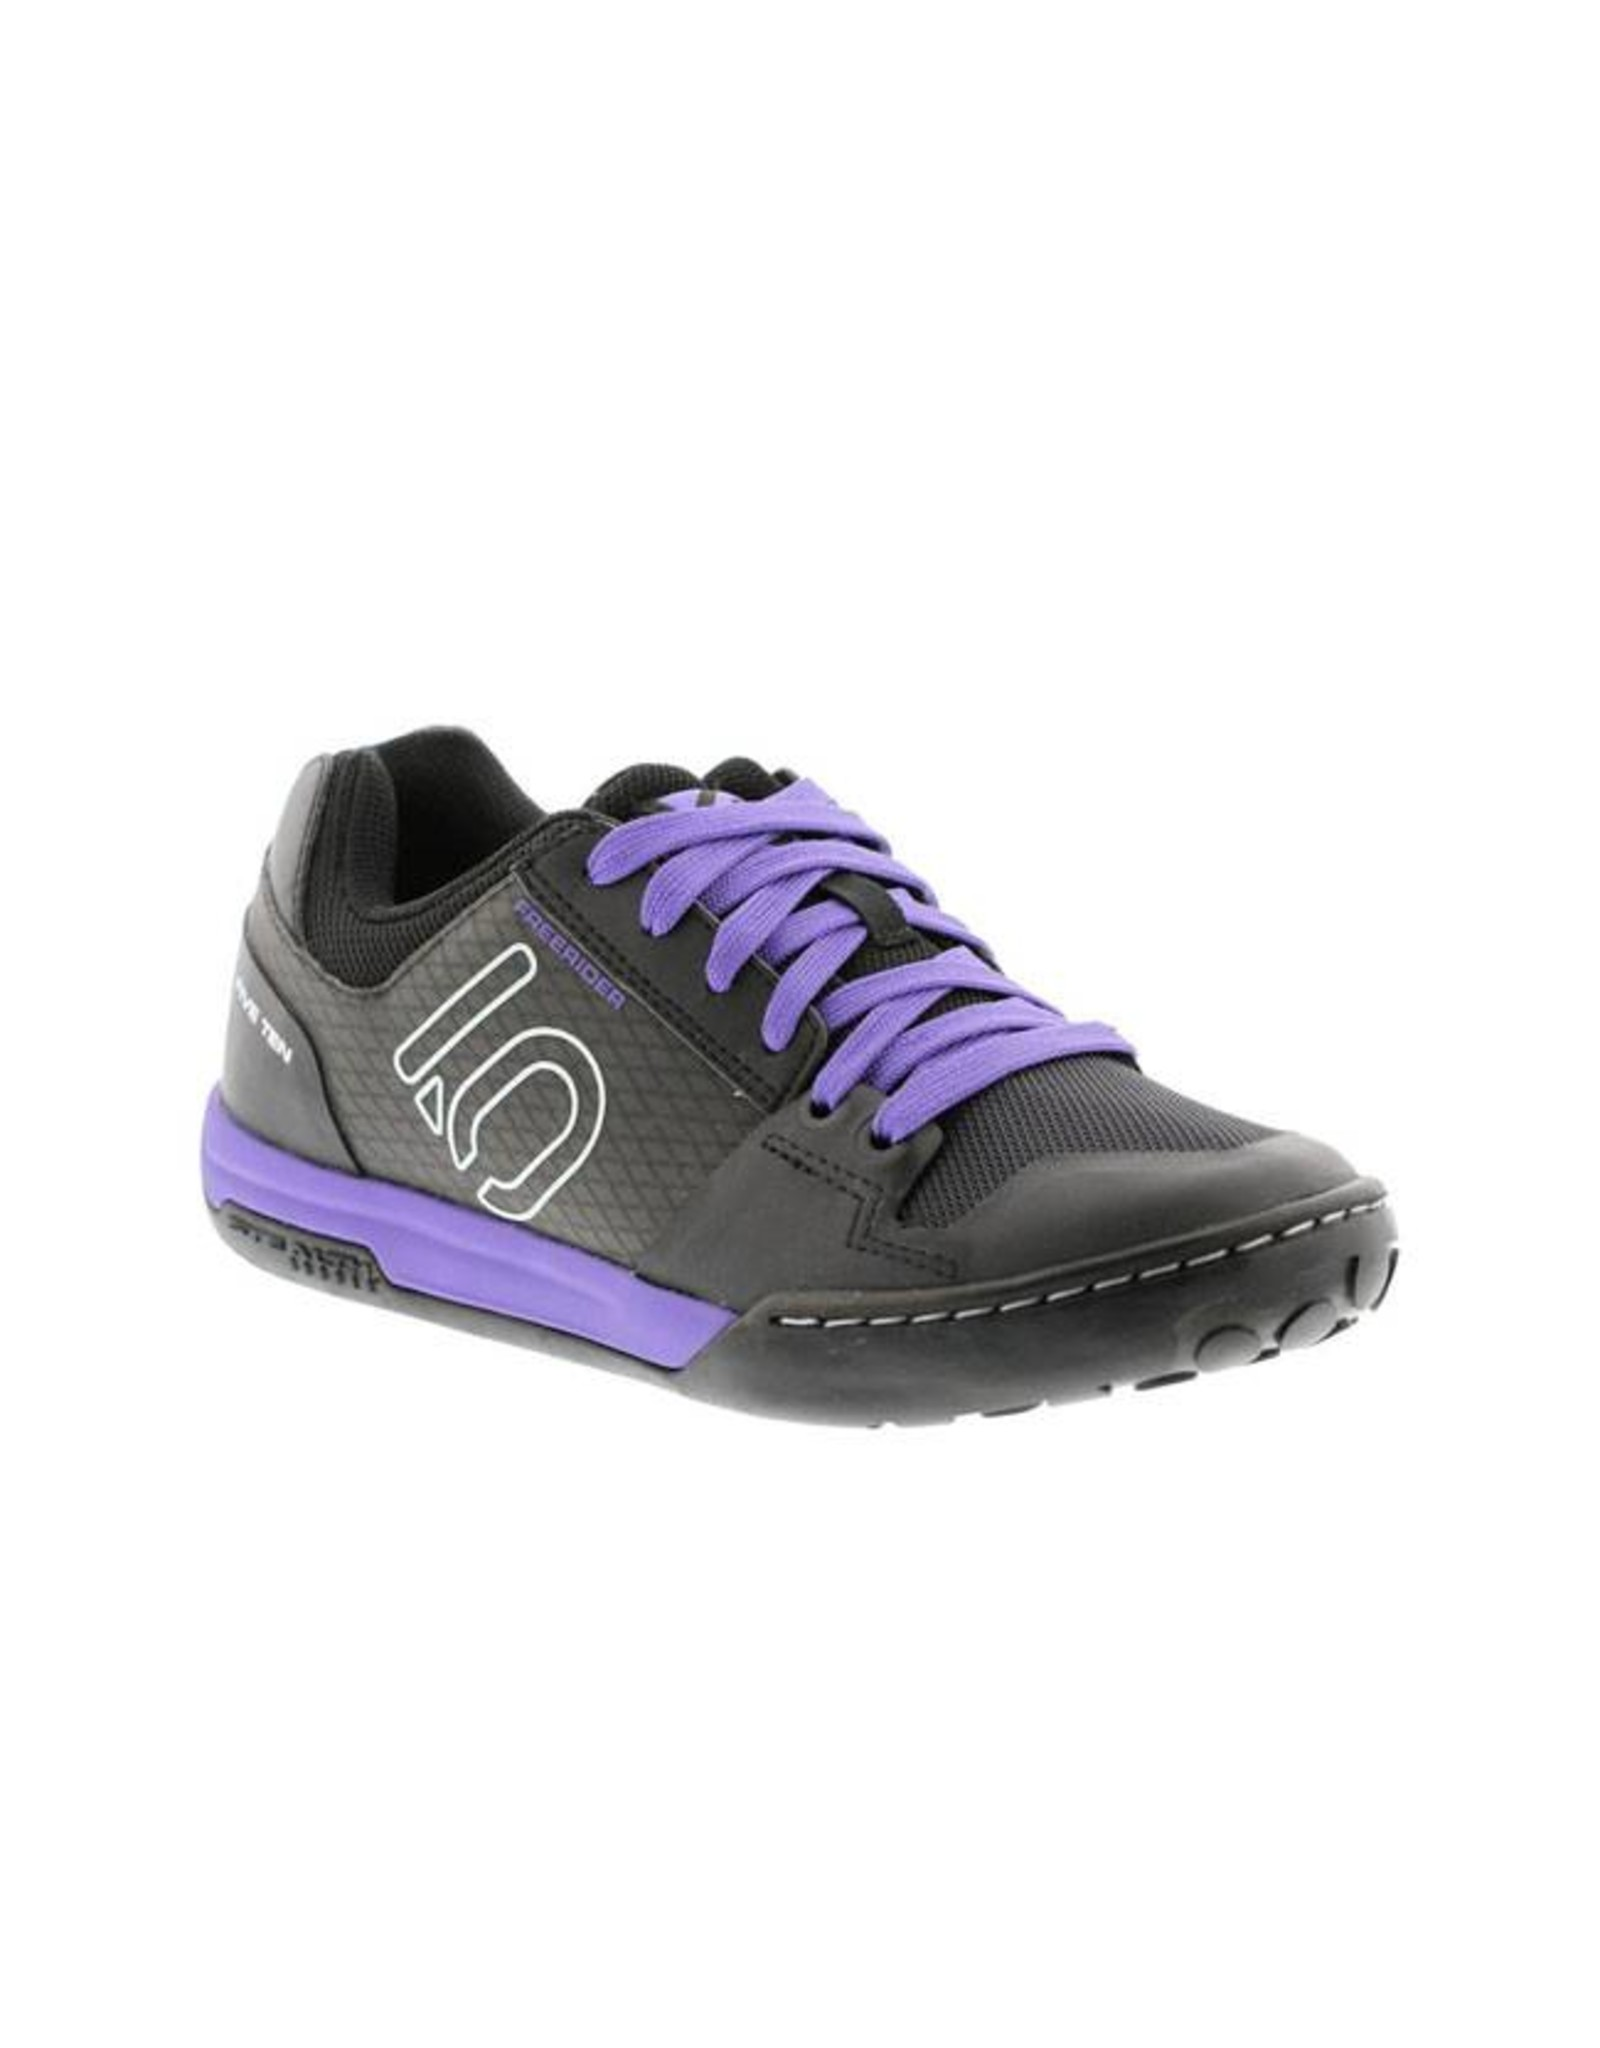 Five Ten Five Ten Freerider Contact Women's Flat Pedal Shoe: Split Purple 8